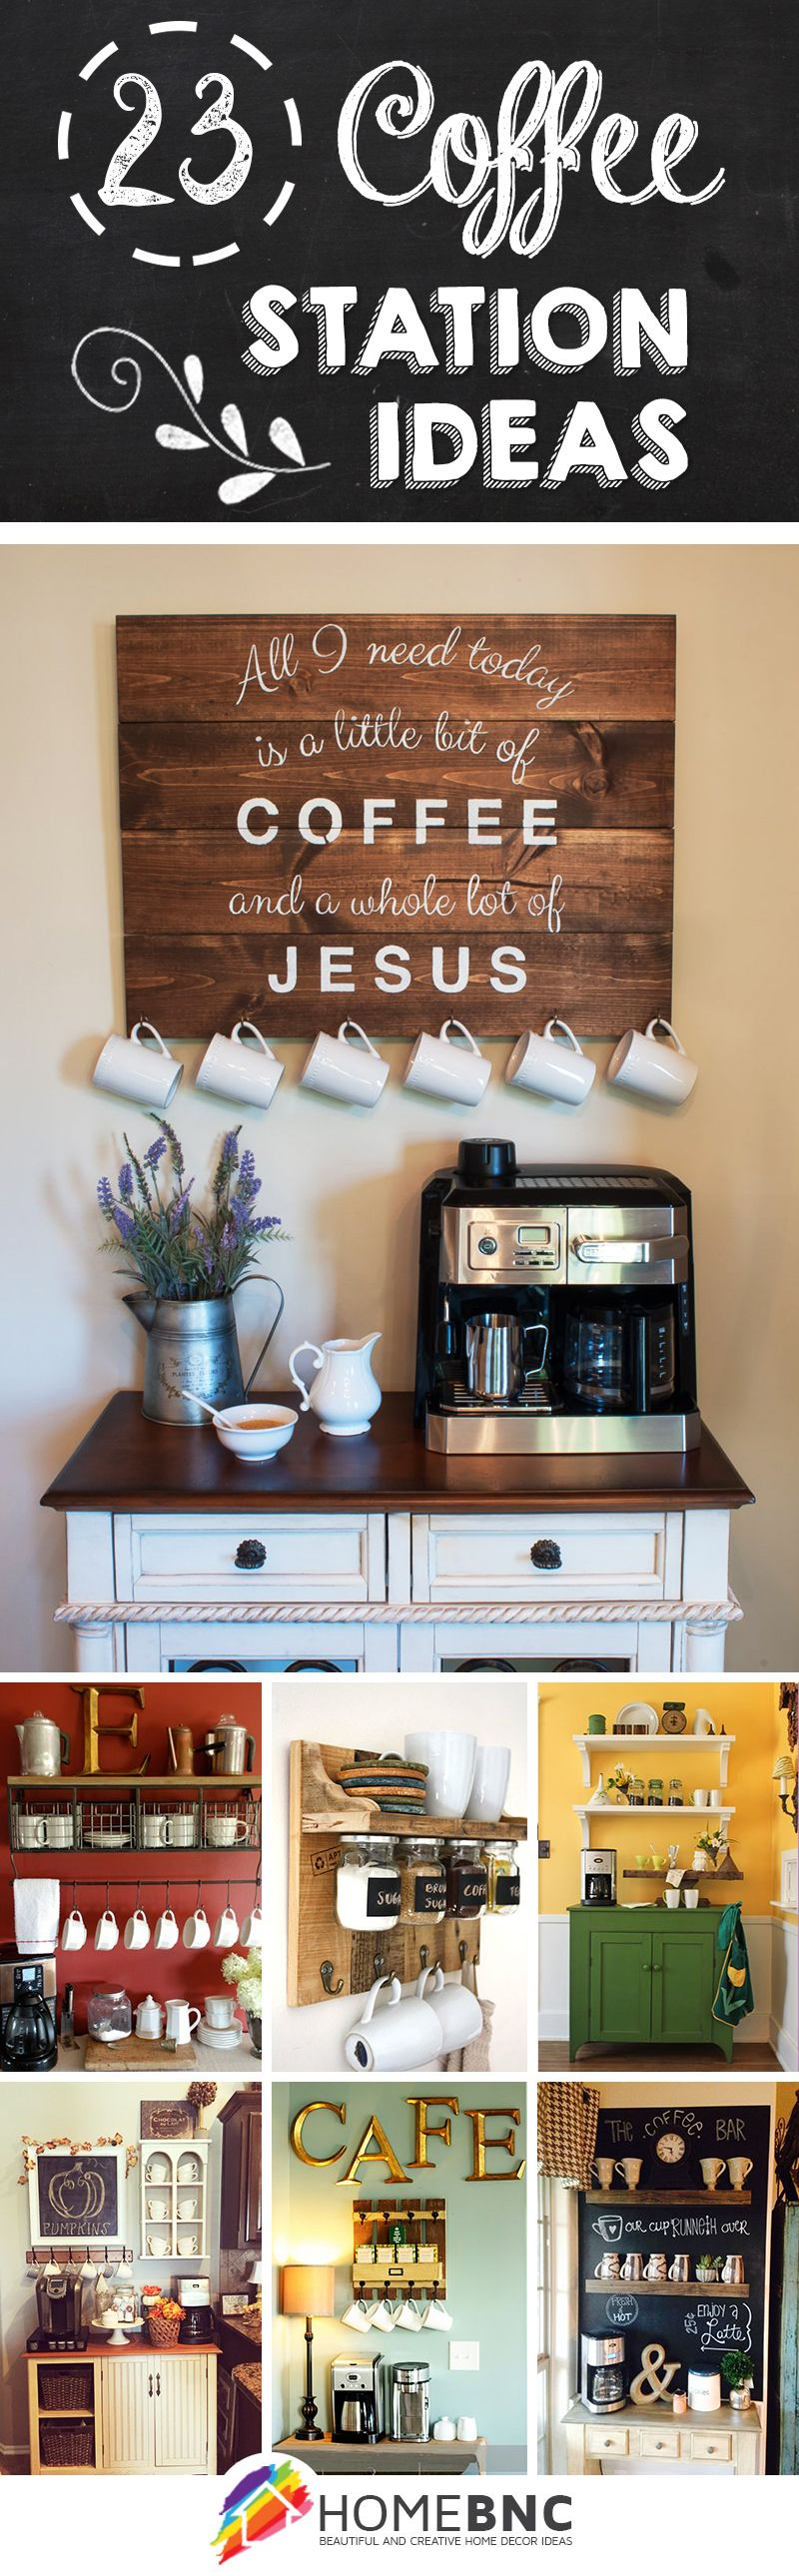 8x10 küchenideen  coffee station ideas for your morning buzz  for the home